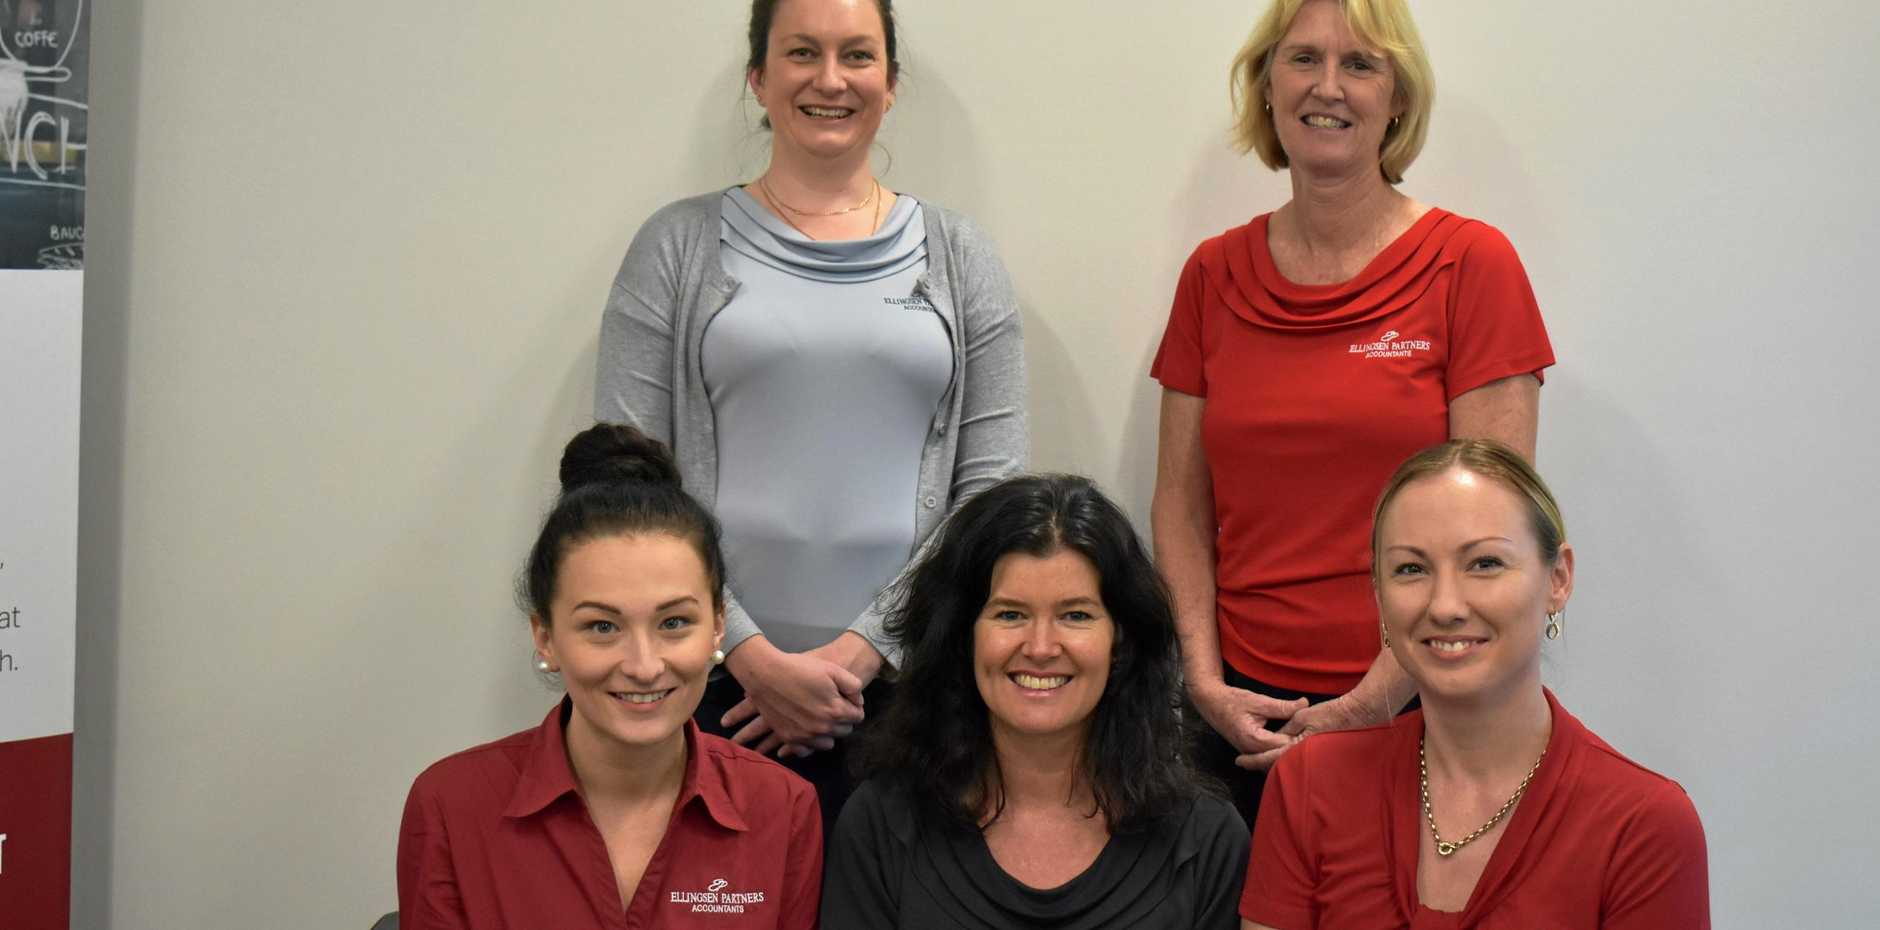 TEAM WORK: Part of Ben's team at Ellingsen partners are (back from left) Jenna Lawes and Fiona Smith and (front) Danielle Job, Shirley Mountfort and Bridget Green.